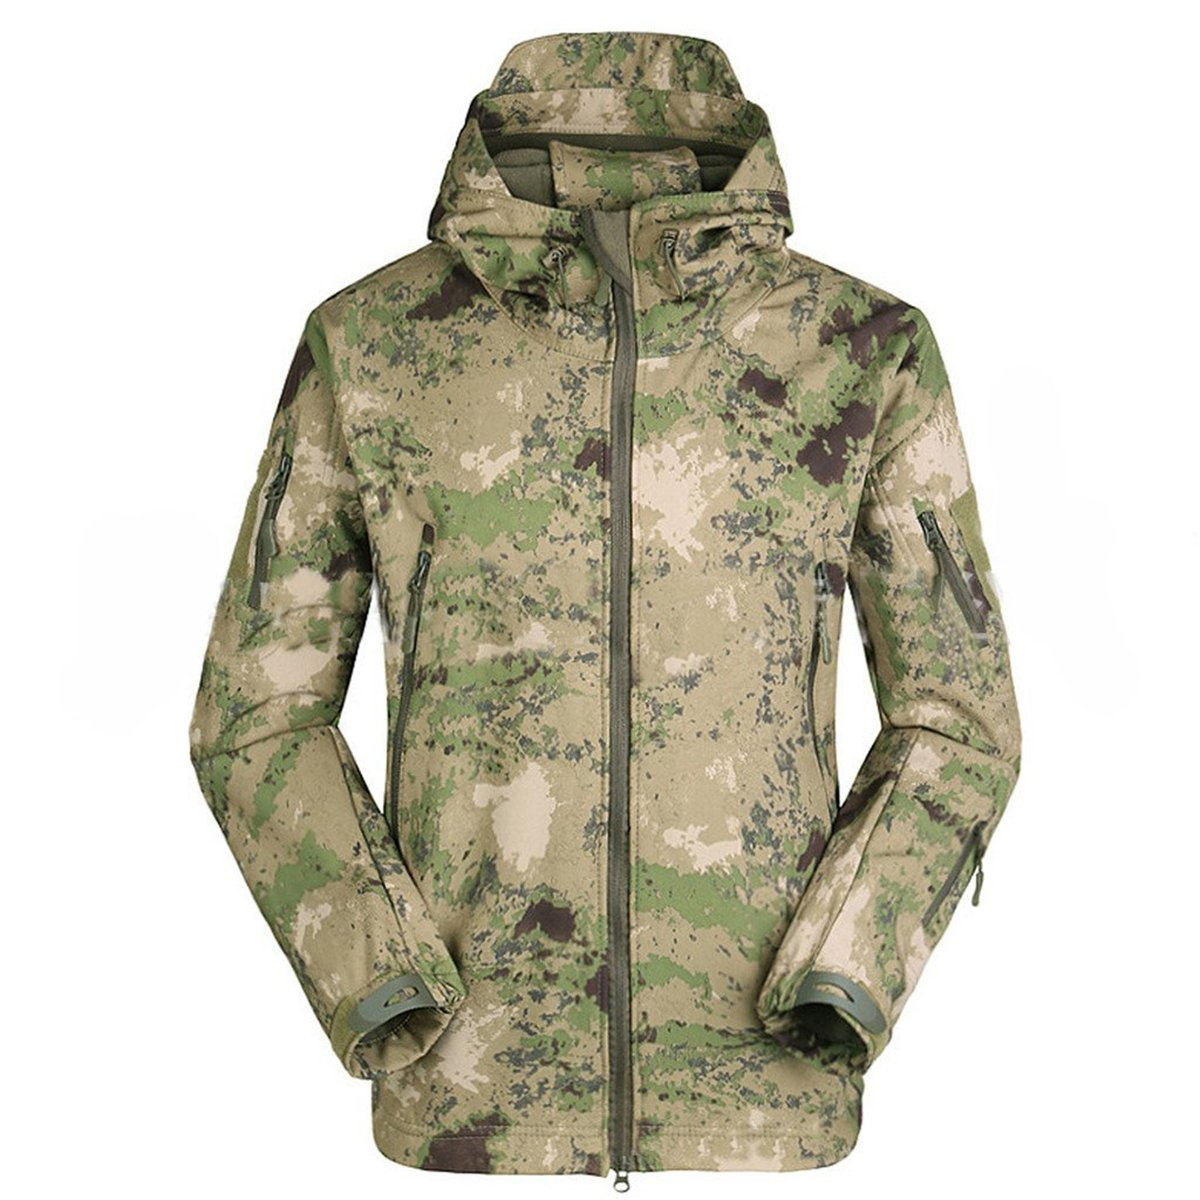 Eglemall Men's Outdoor Hunting Soft Shell Waterproof Tactical Fleece Jackets (XXX-Large, Ruins green) by Eglemall